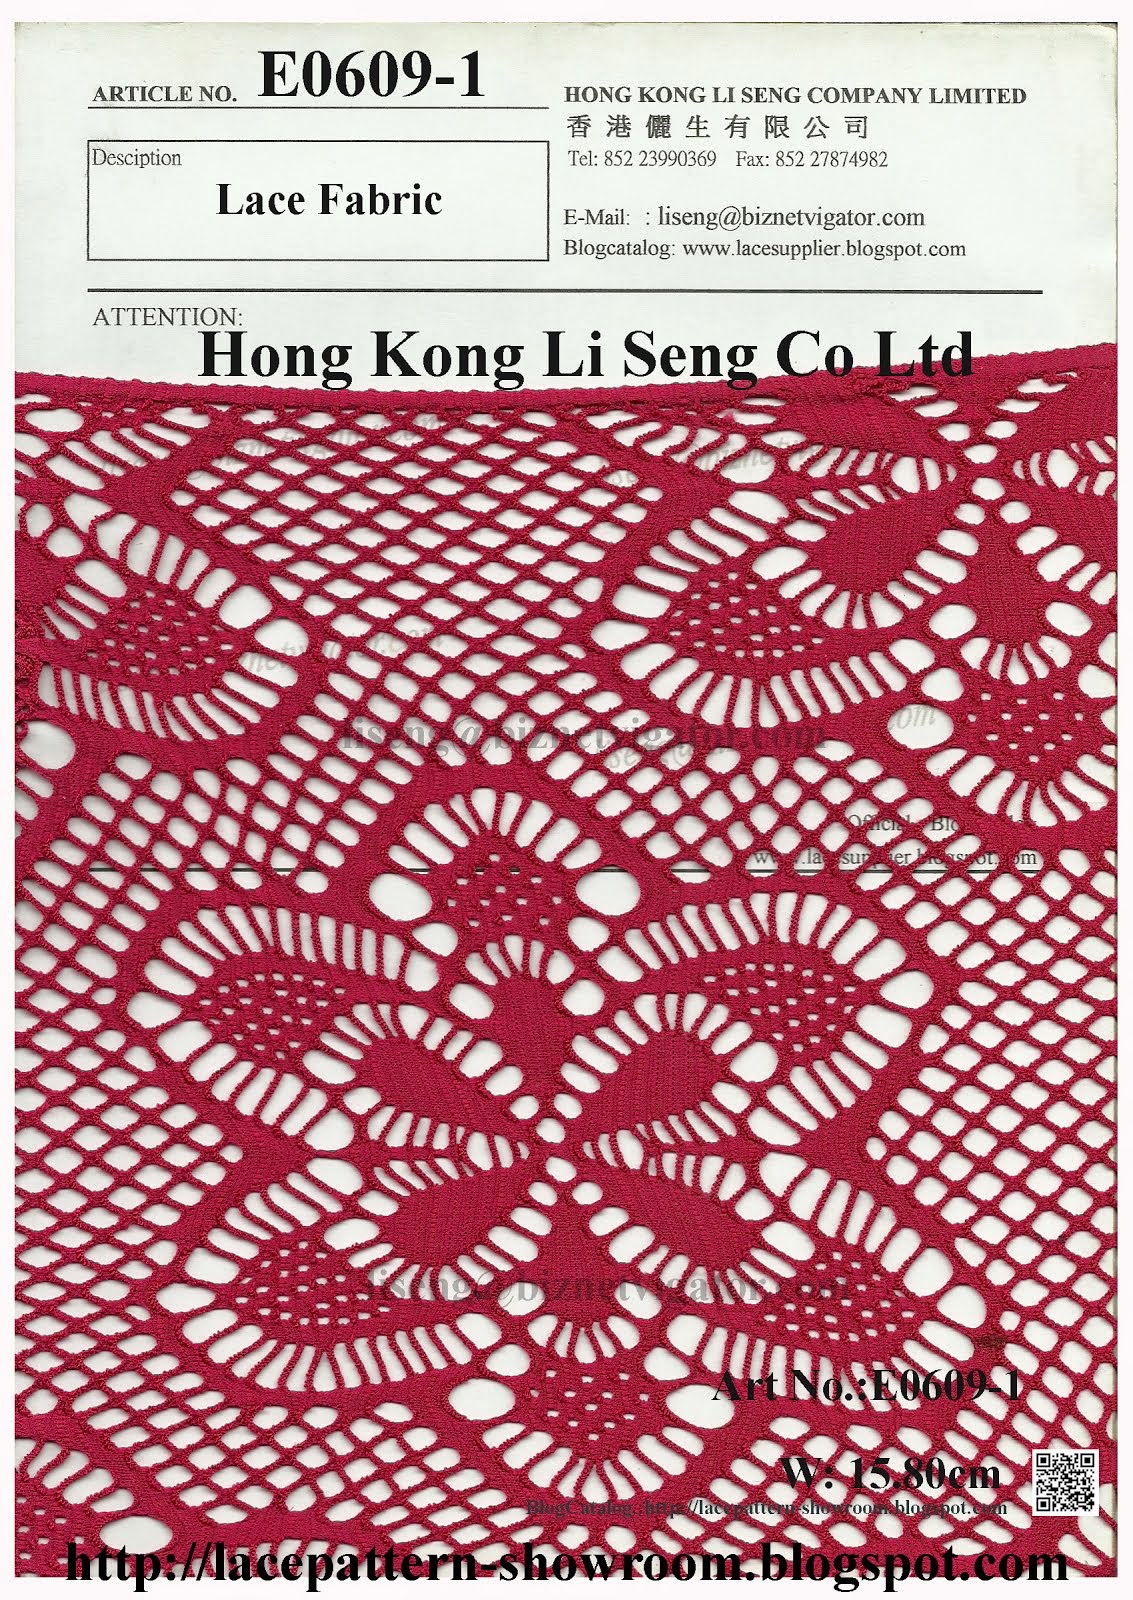 Big Flower Lace Fabric Manufacturer and Supplier - Hong Kong Li Seng Co Ltd